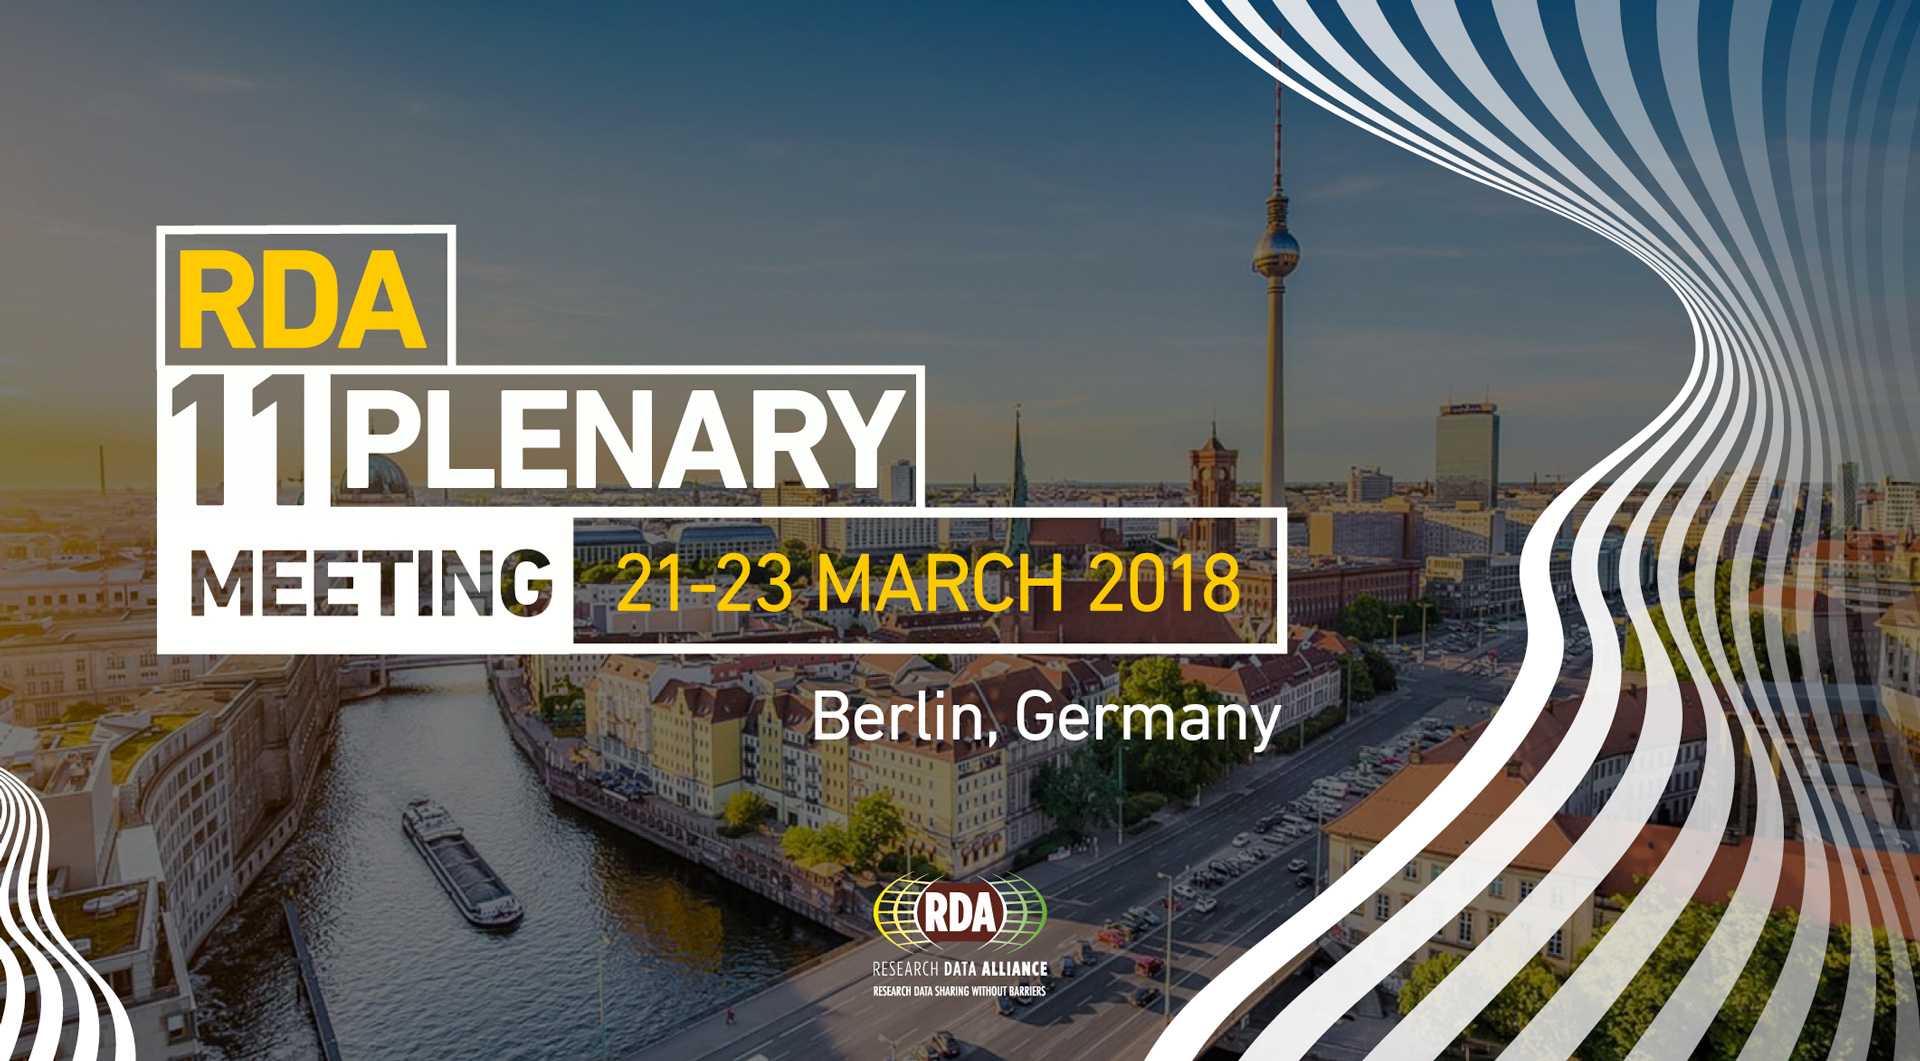 RDA Eleventh Plenary Meeting, Berlin, Germany